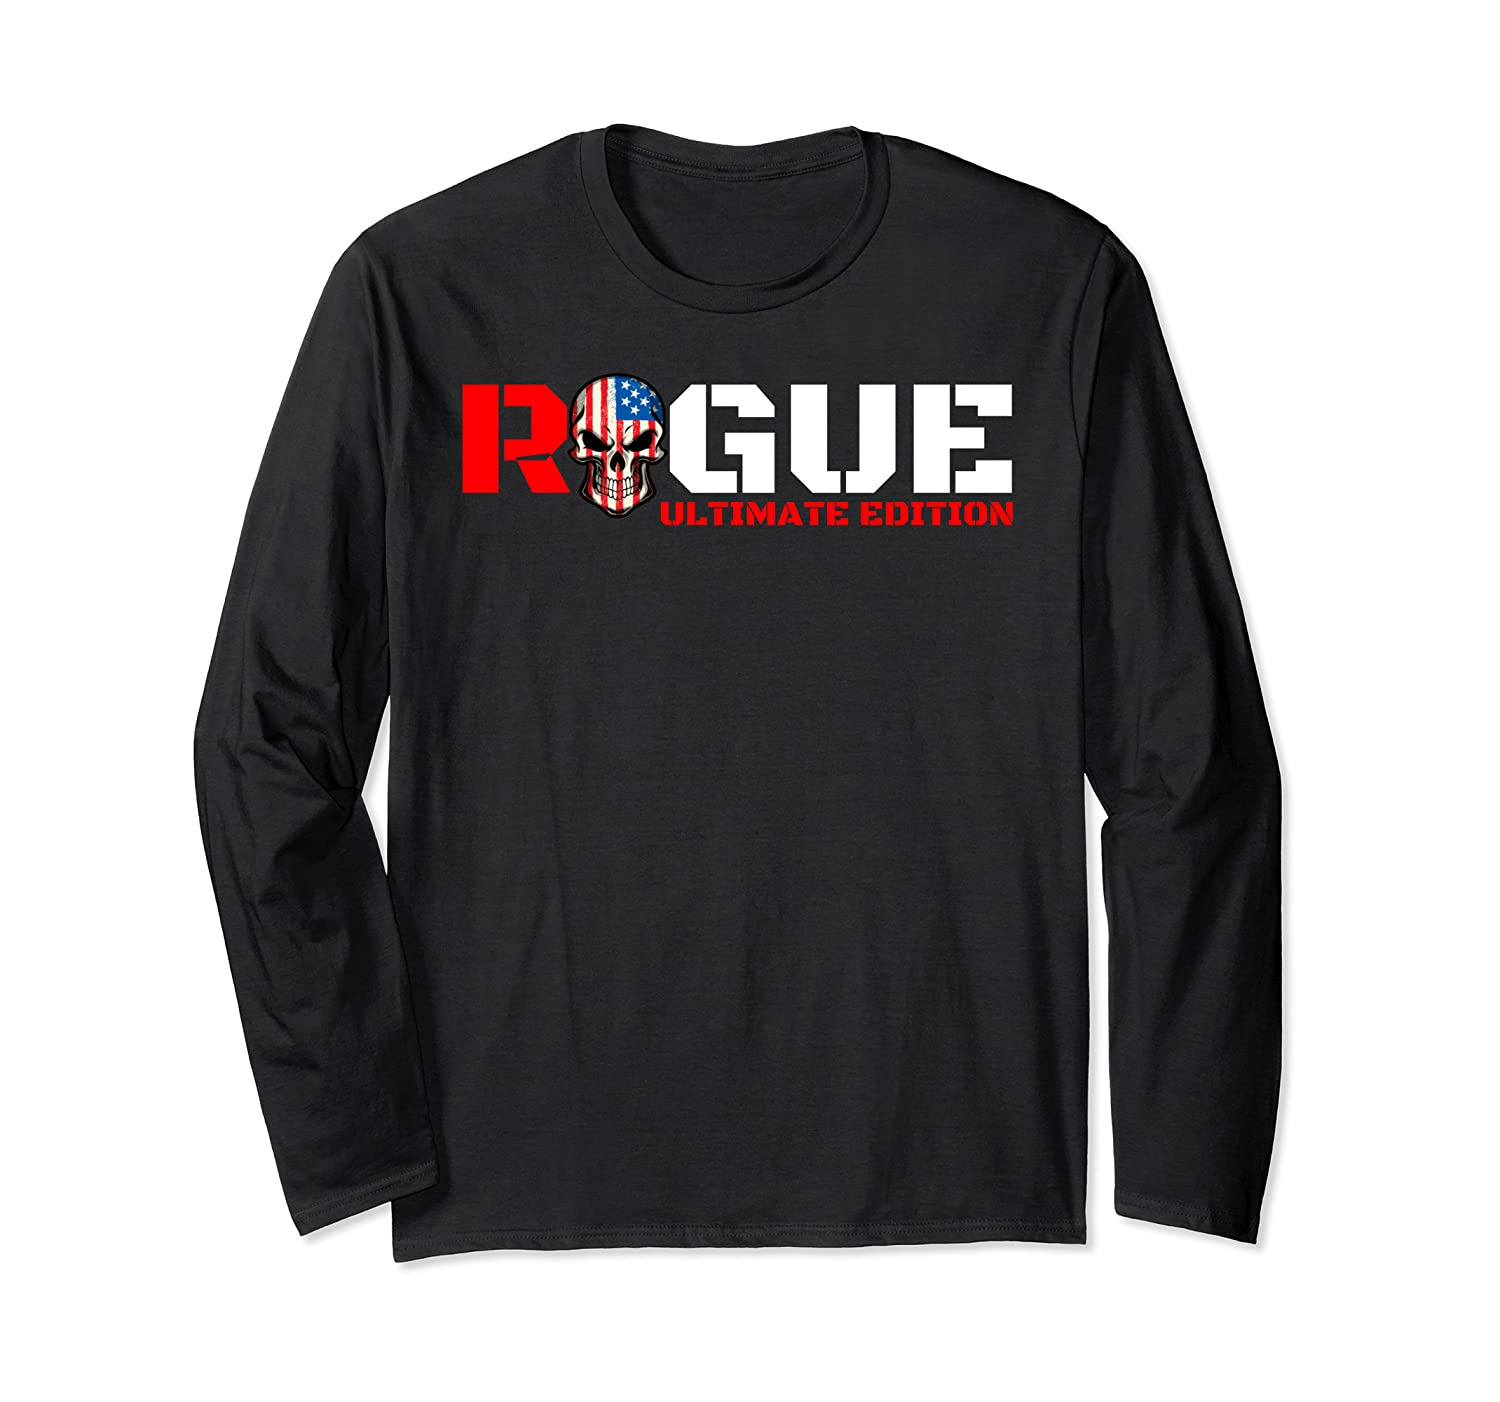 Rogue Cool Military Style Armed Forces Bad Boy Shirts